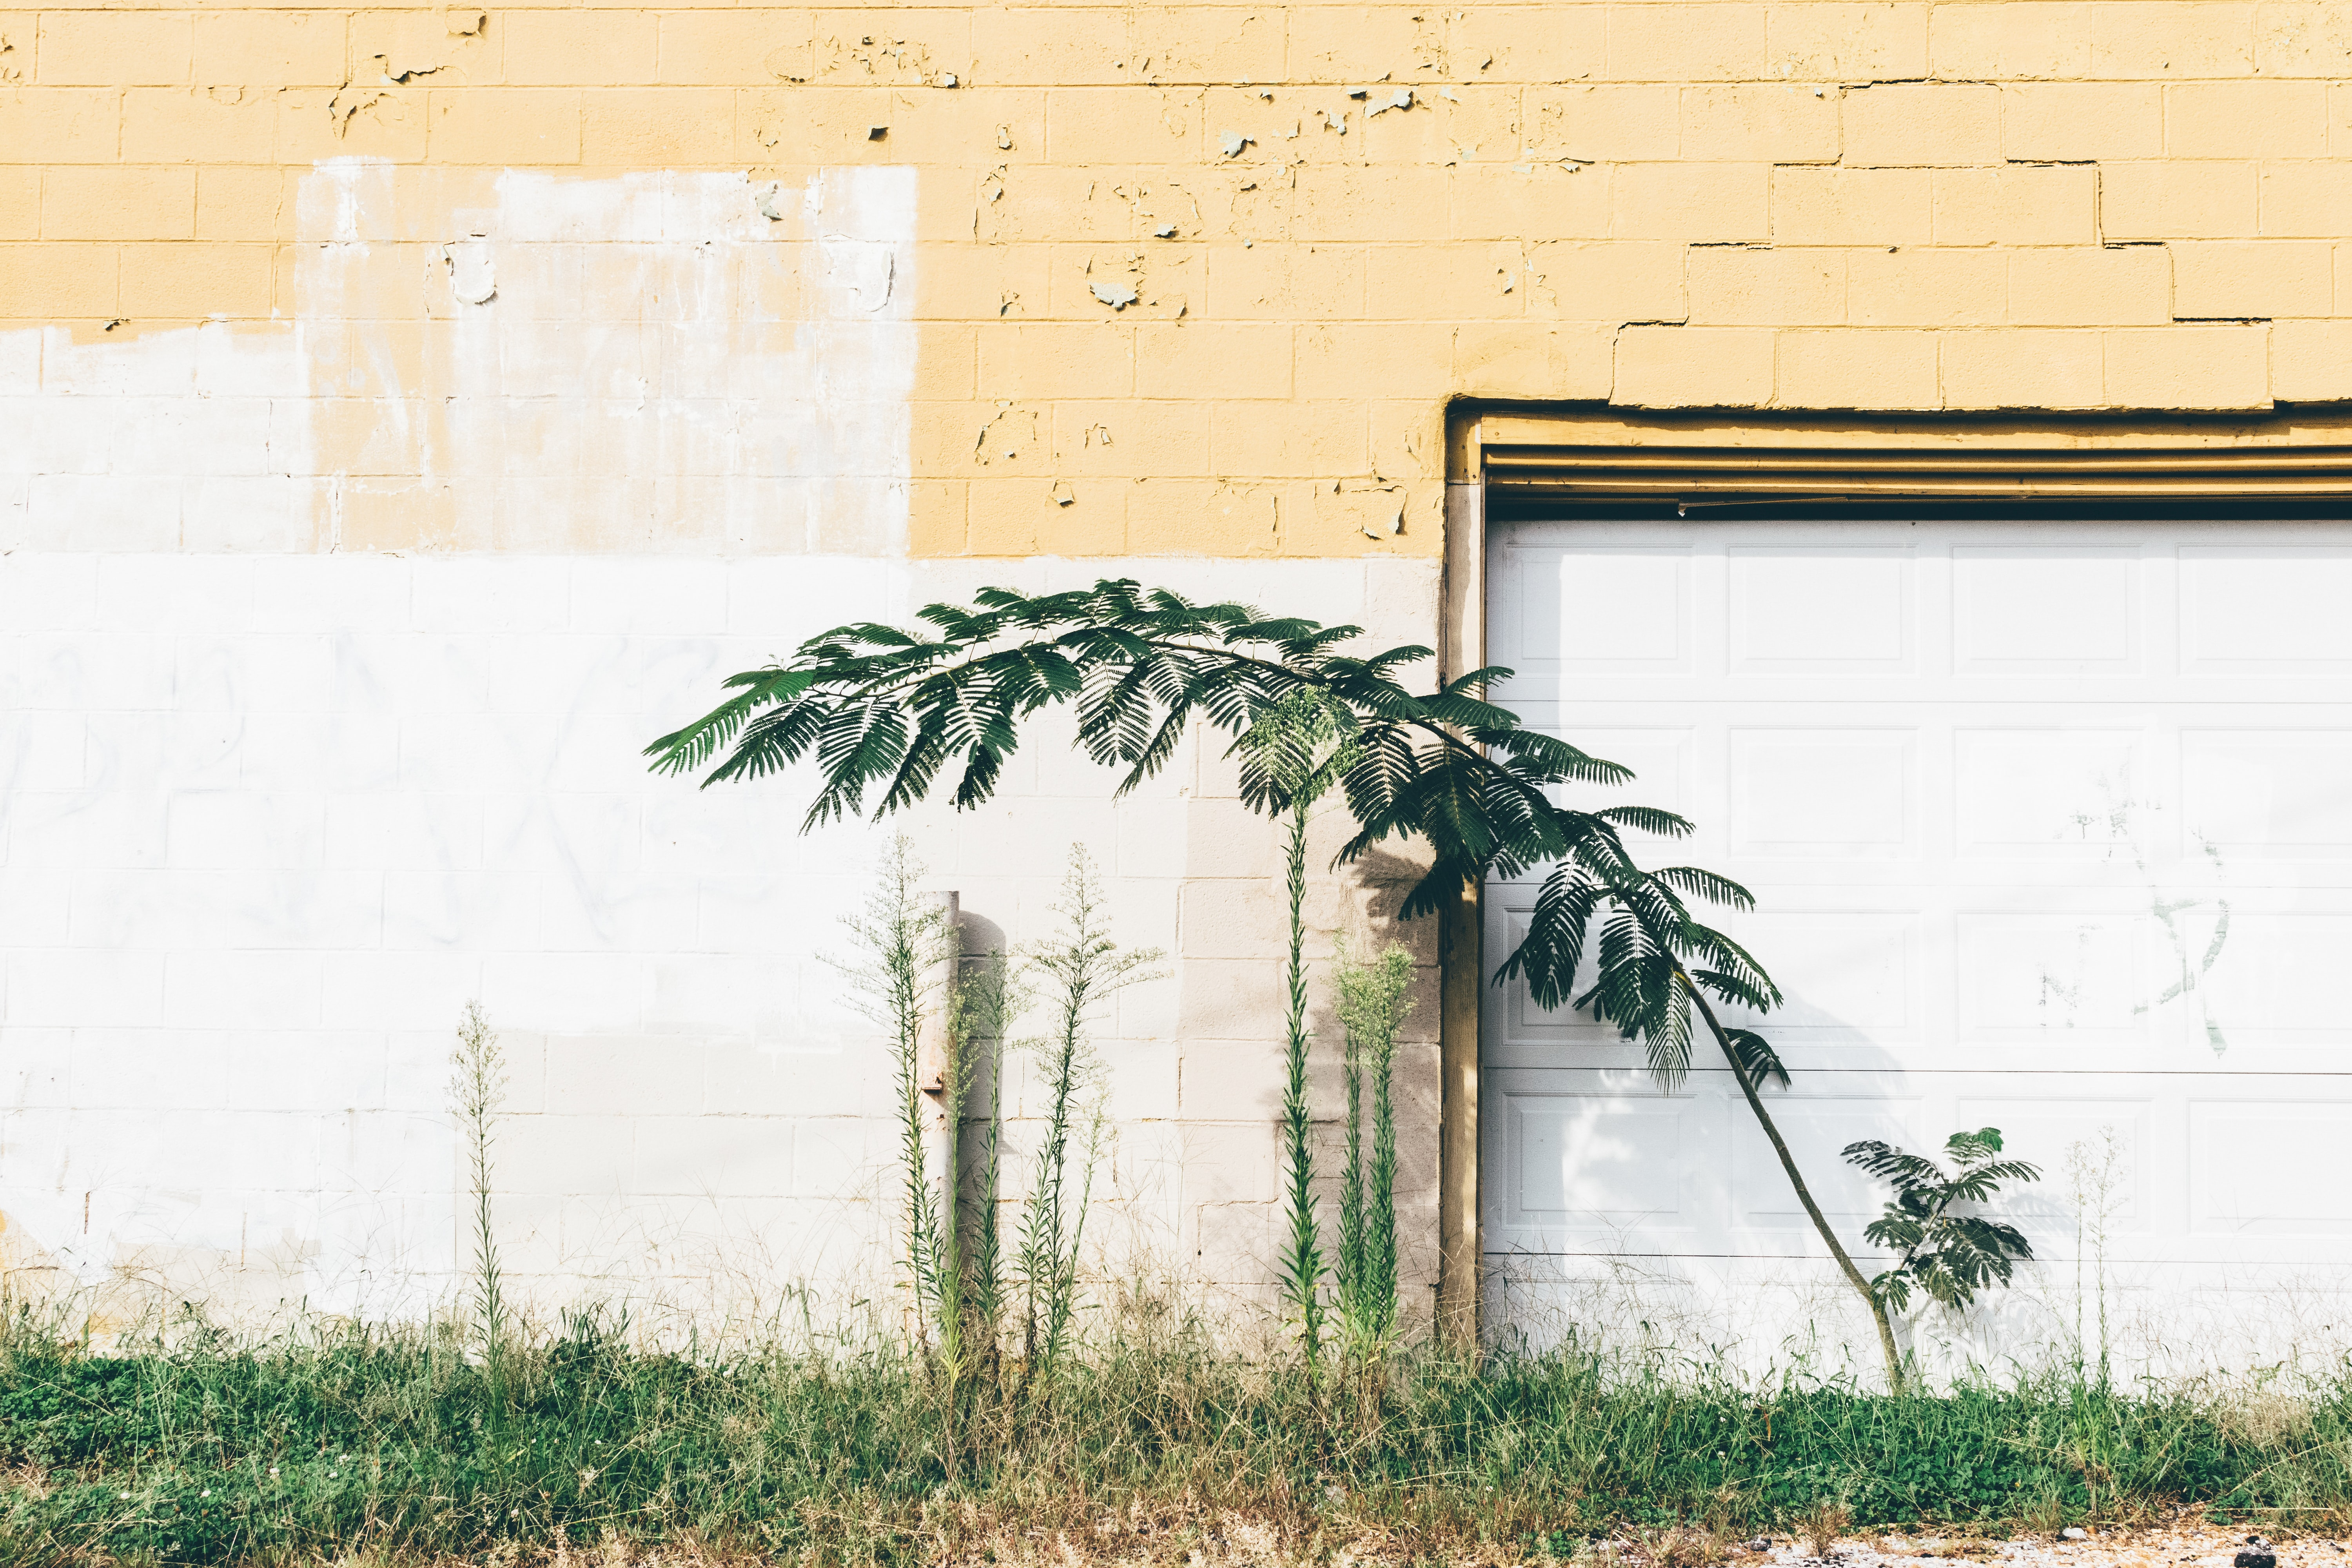 green leaf plant near brown and white painted wall during daytime